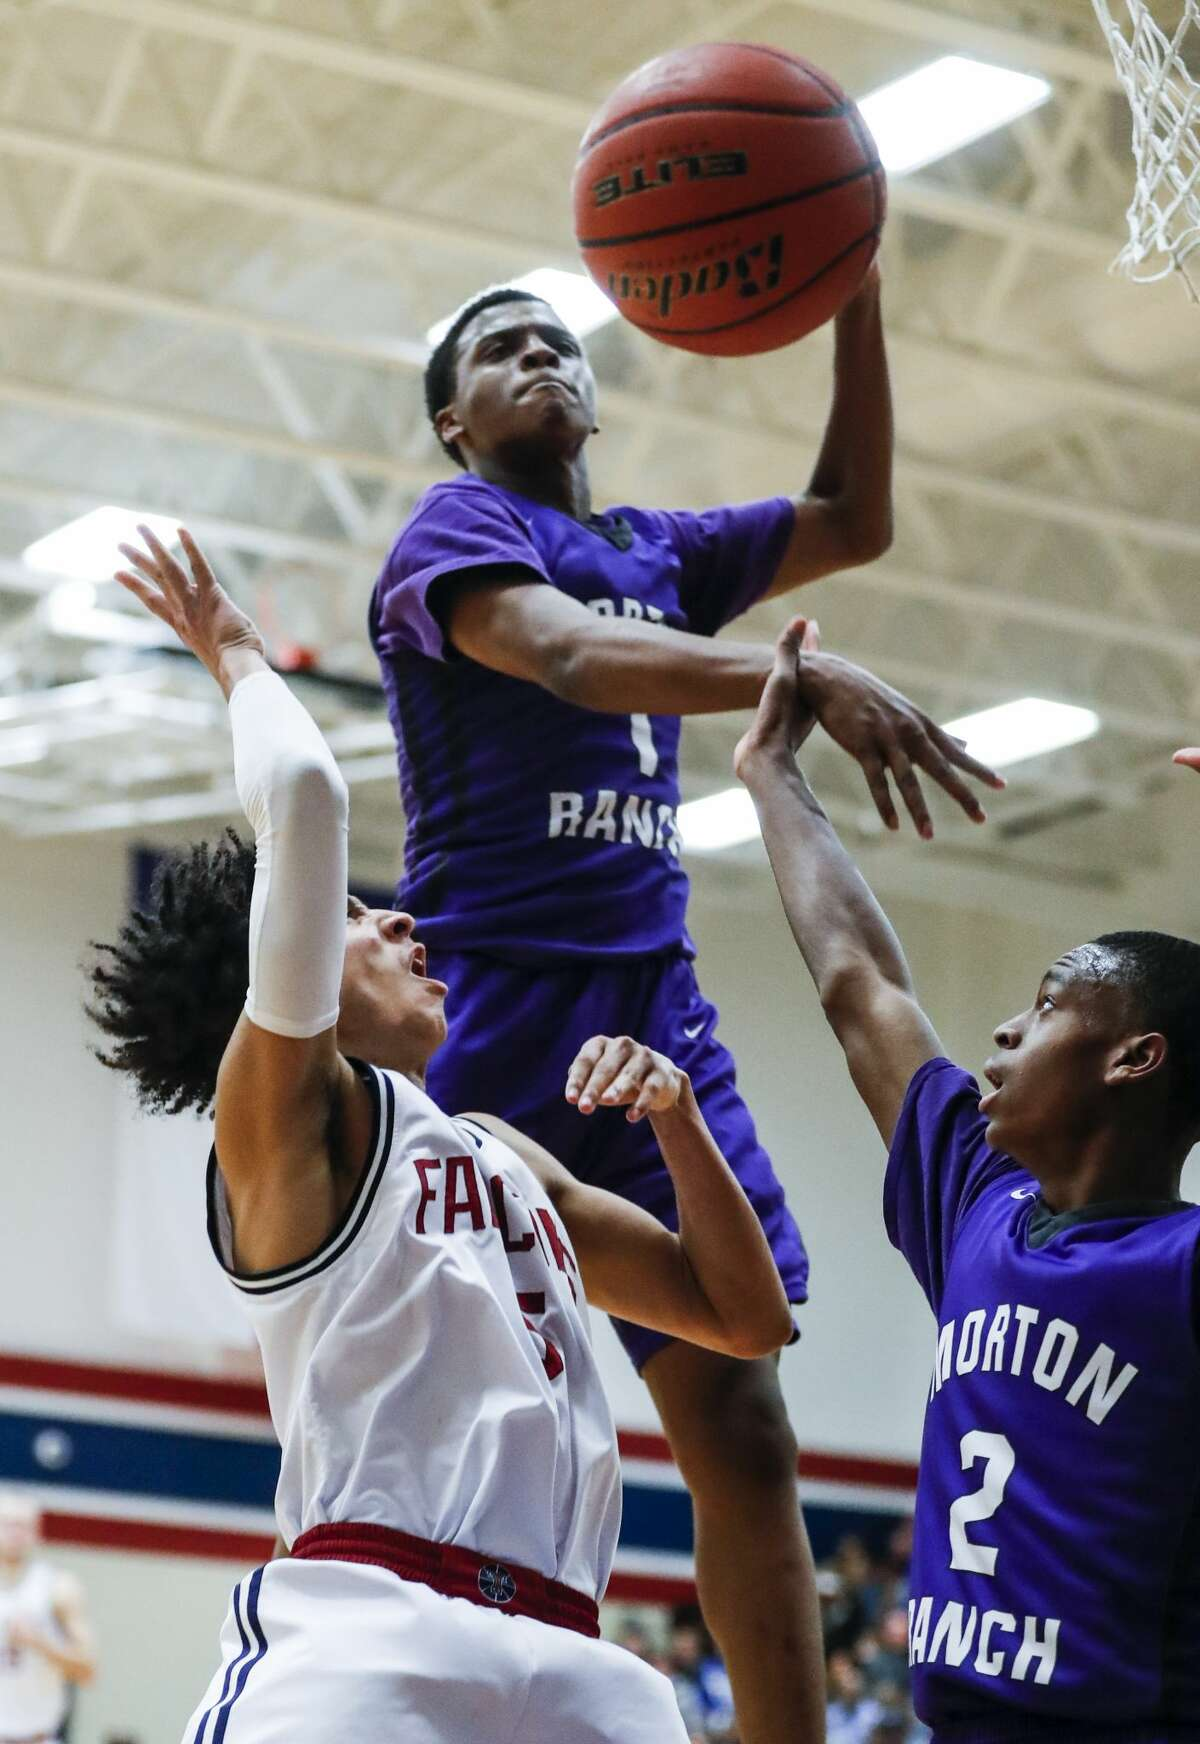 Morton Ranch's Marcellous Paul (1) blocks a shot by Tompkins' Emmanuel Holt (5) during a 19-6A high school basketball game at Tompkins High School on Friday, Jan. 19, 2018, in Katy. ( Brett Coomer / Houston Chronicle )